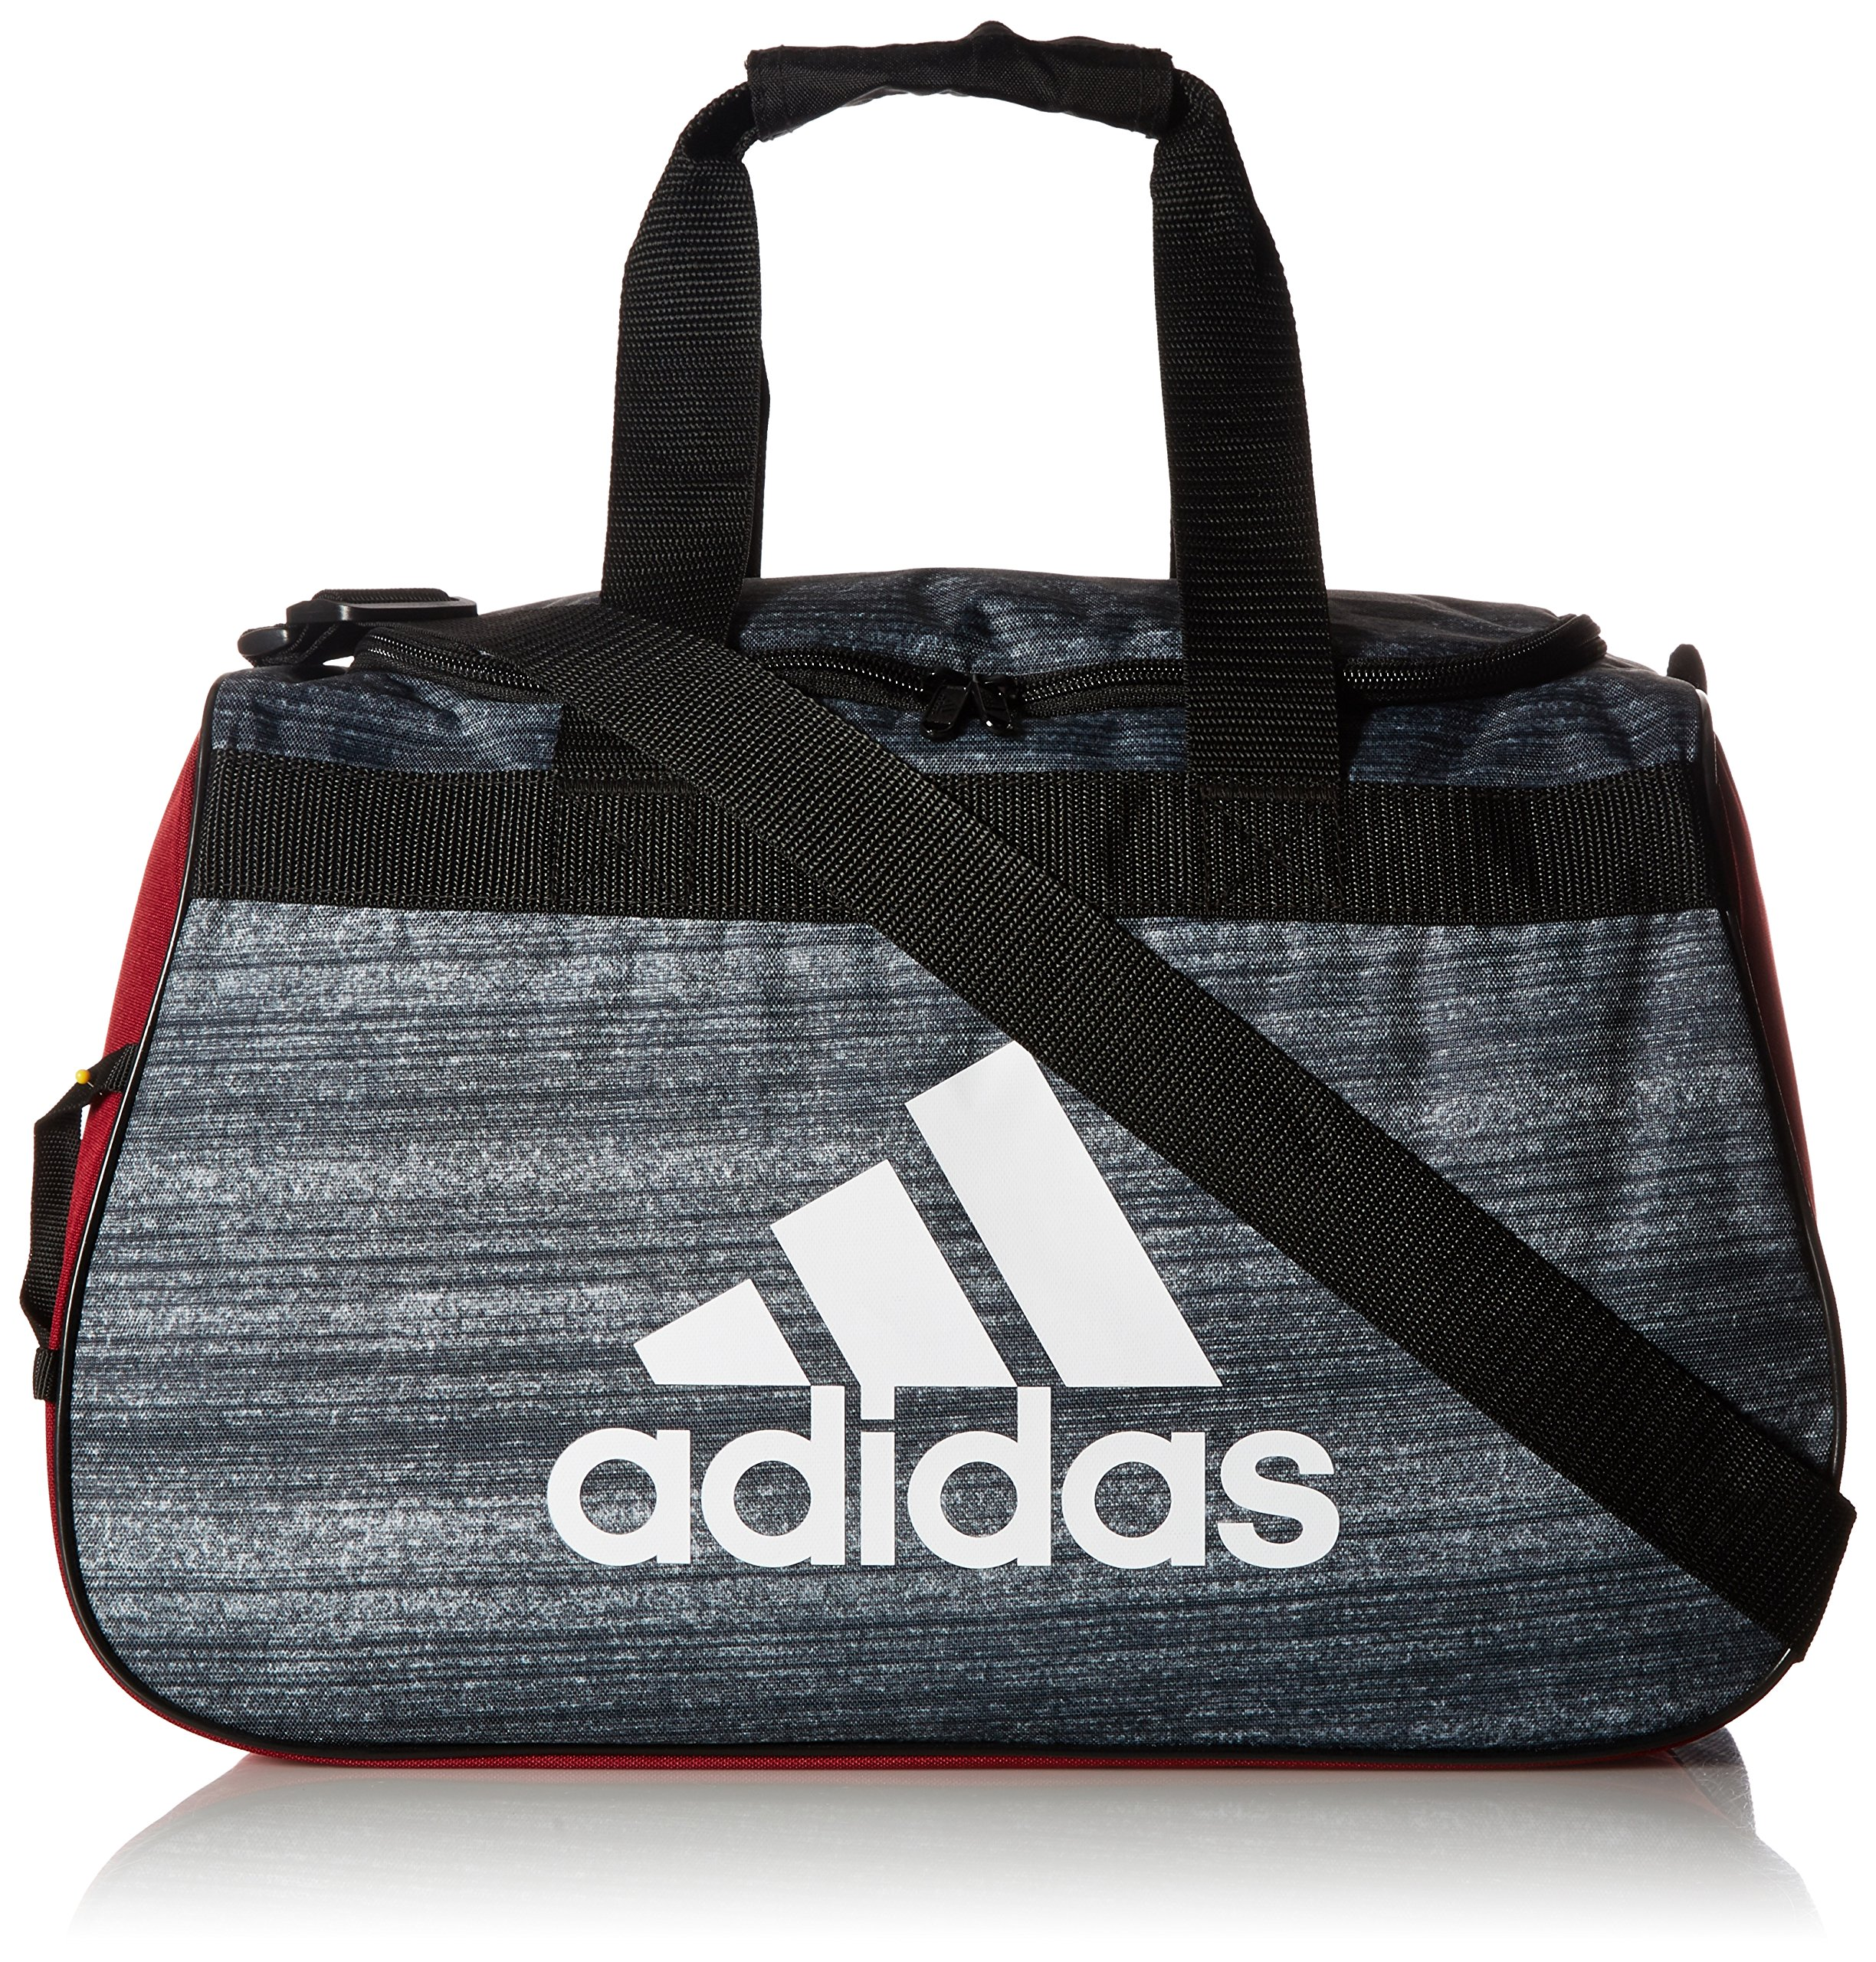 adidas Diablo Small Duffel Bag, Noise Black/Collegiate Burgundy/Black/White, One Size